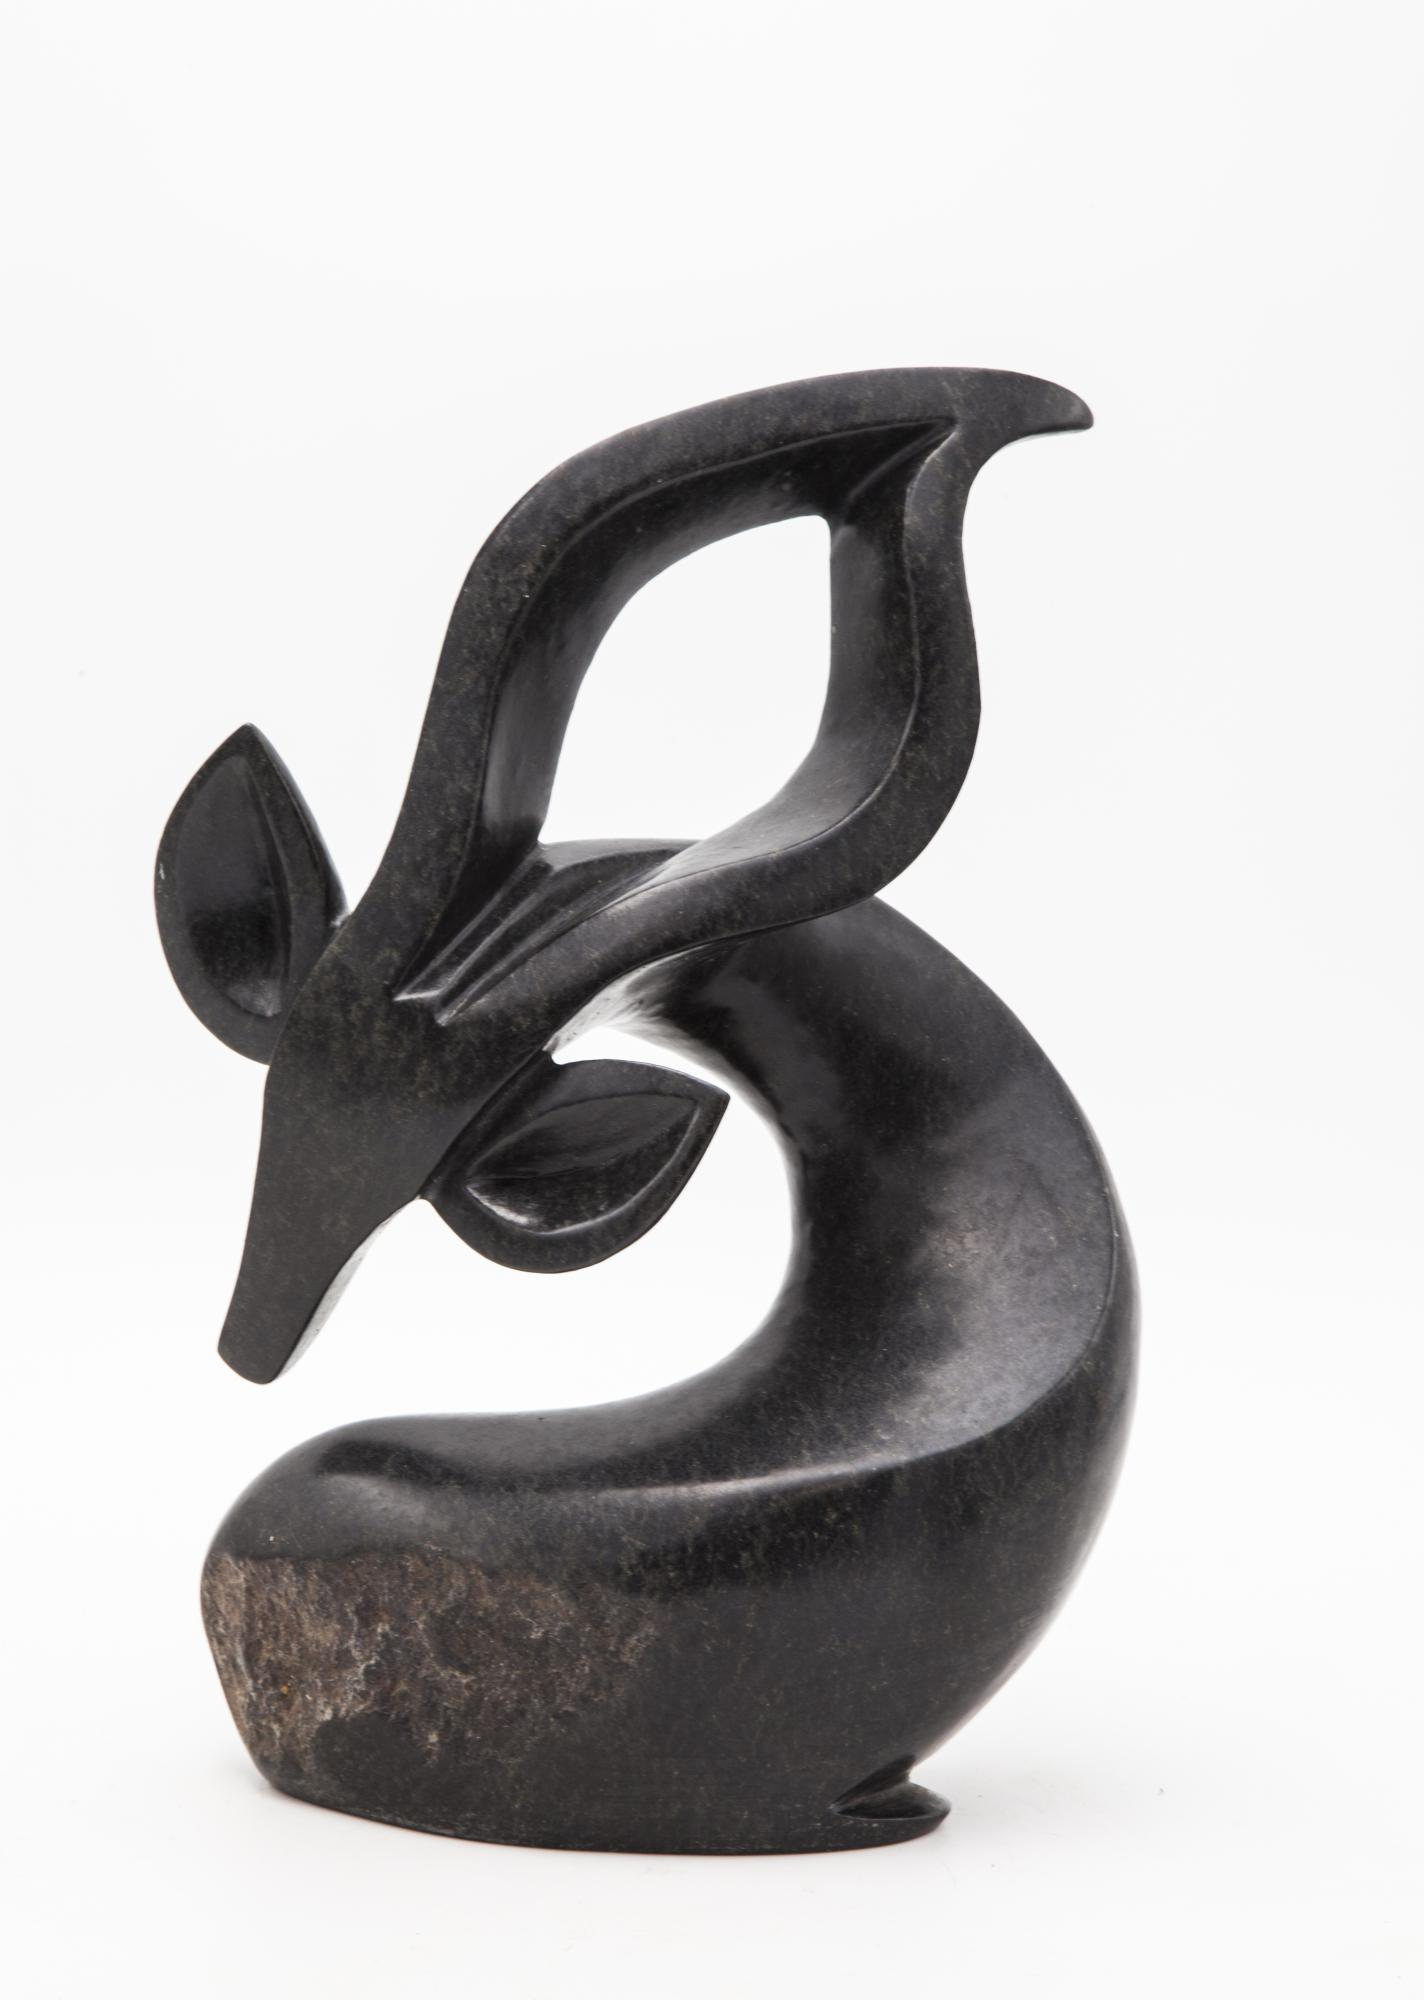 Lot 32 - Sculpture: Fungai Dodzo, Duiker, Springstone, 34.5cm high by 24cm wide by 12.5cm deep